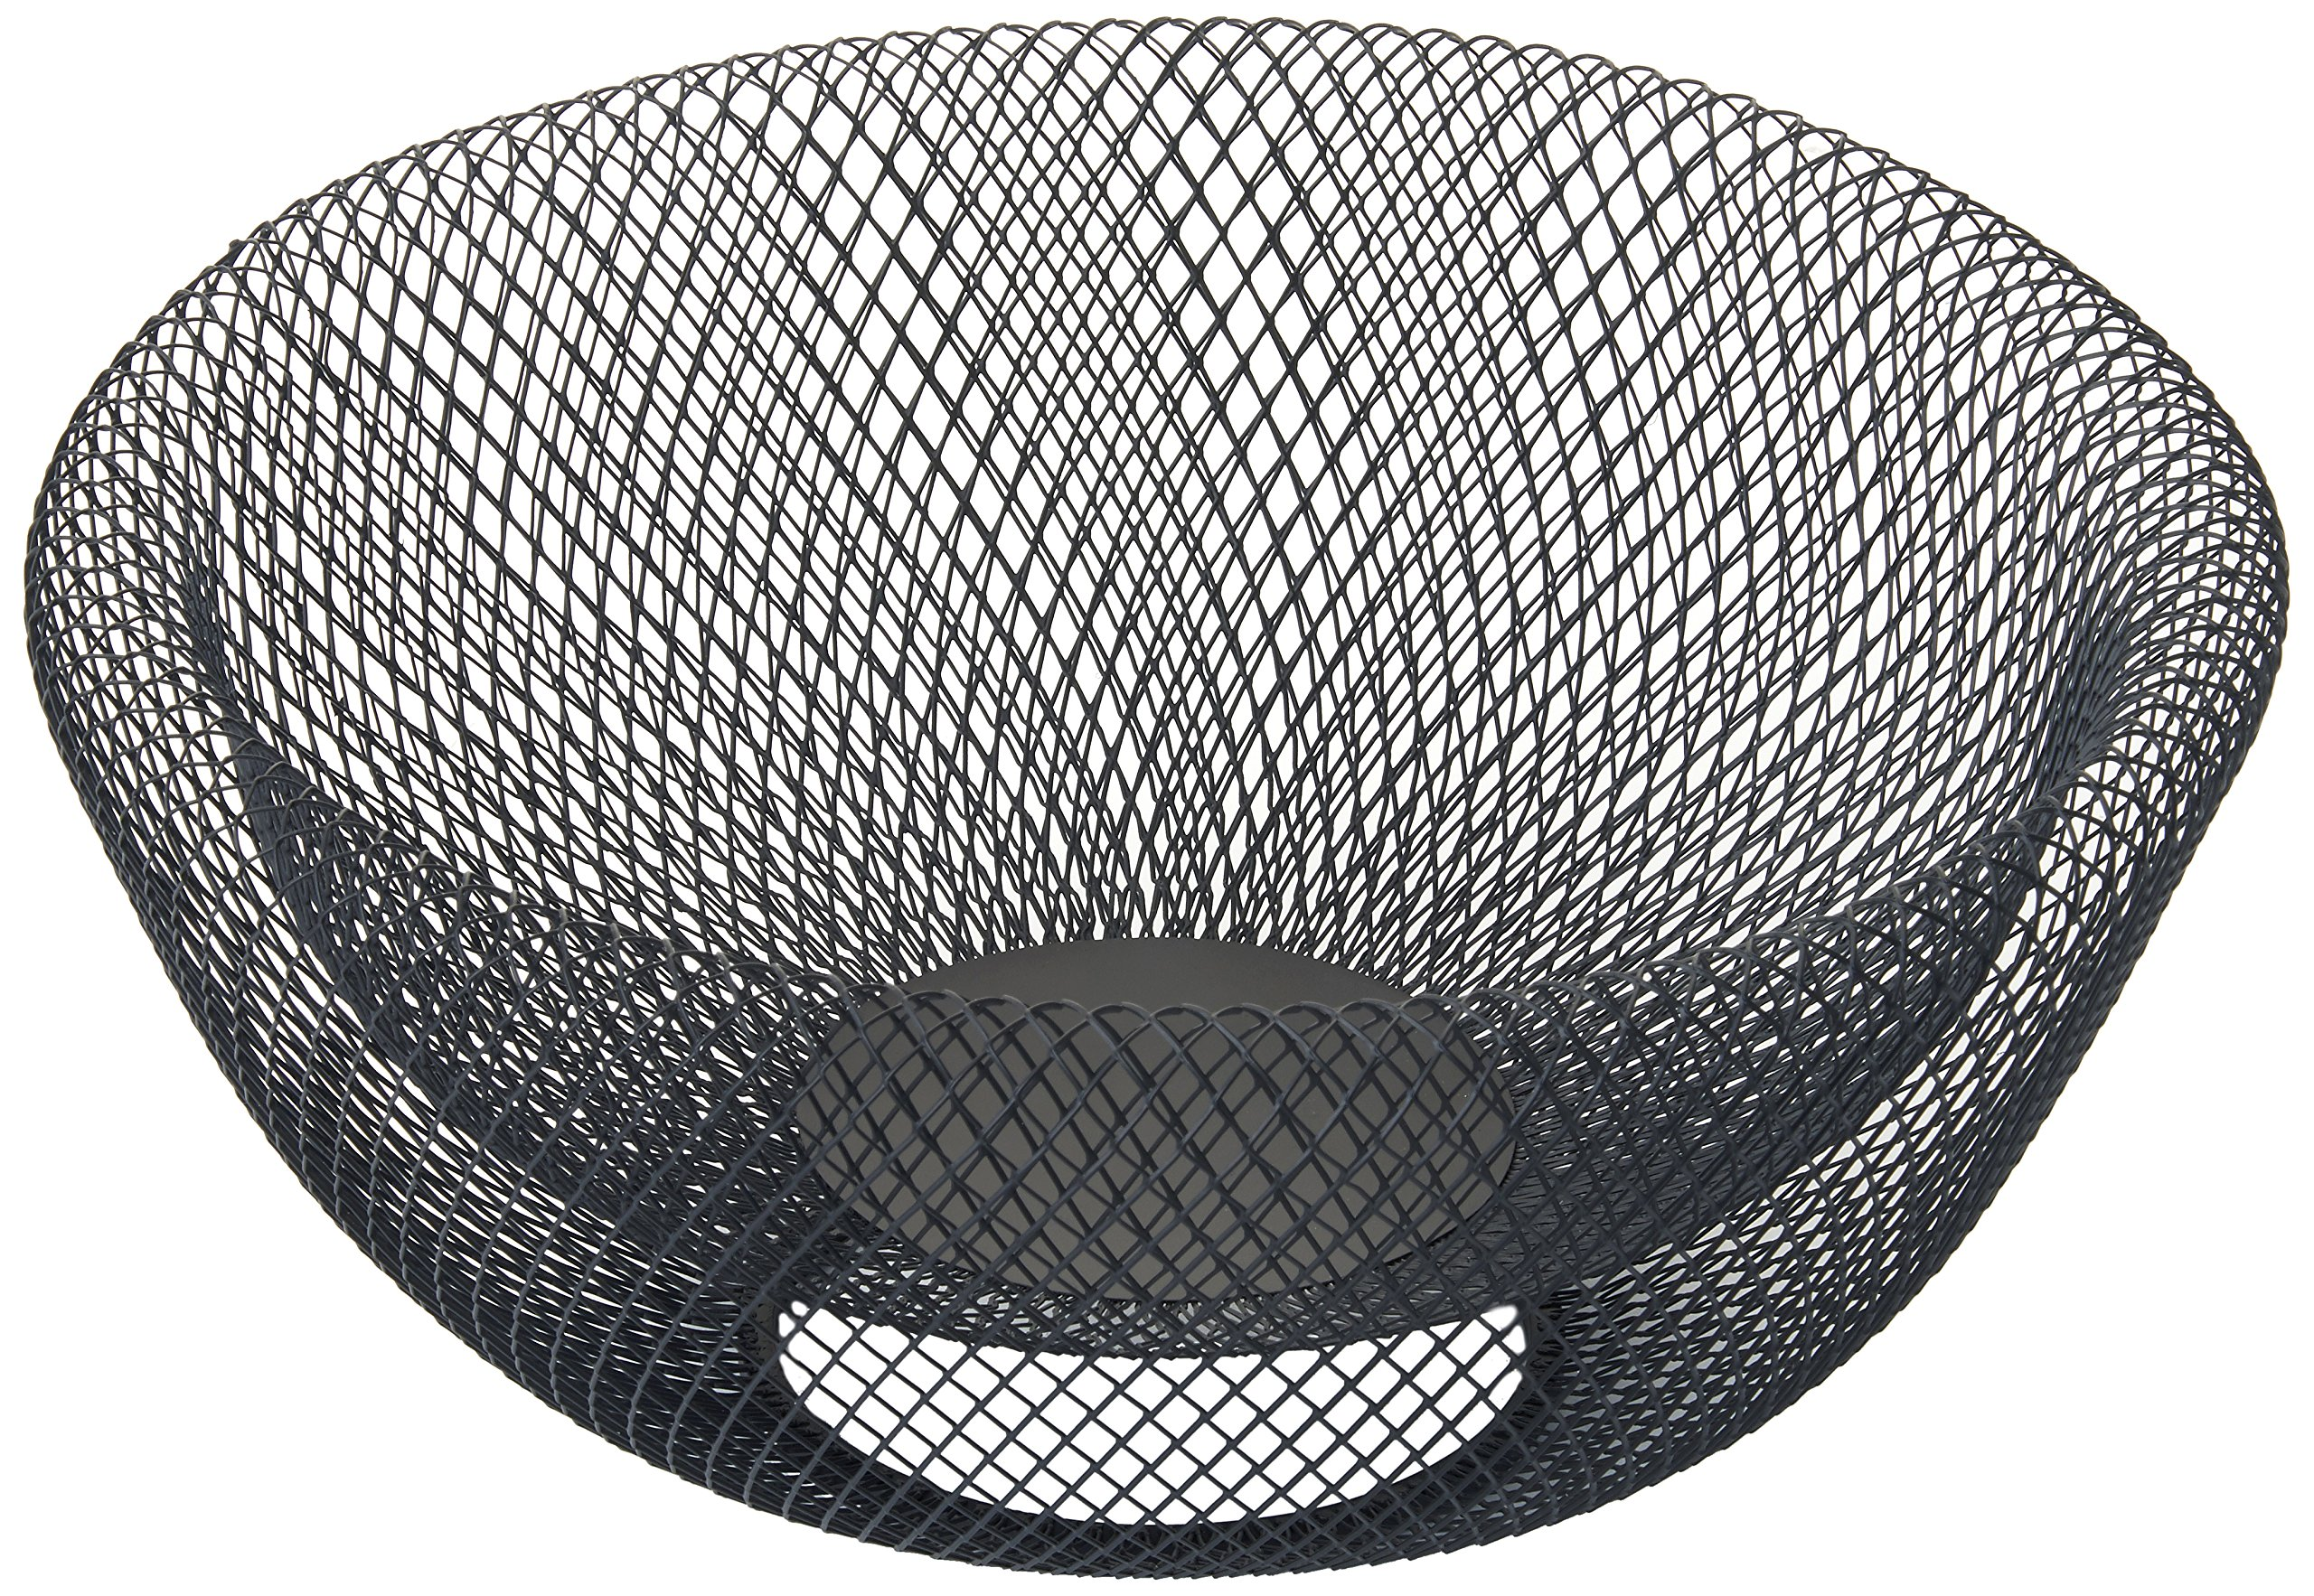 NIFTY 7541BLK Double Wall Mesh Decorative Fruit Bowl, 5 quart/12, Black